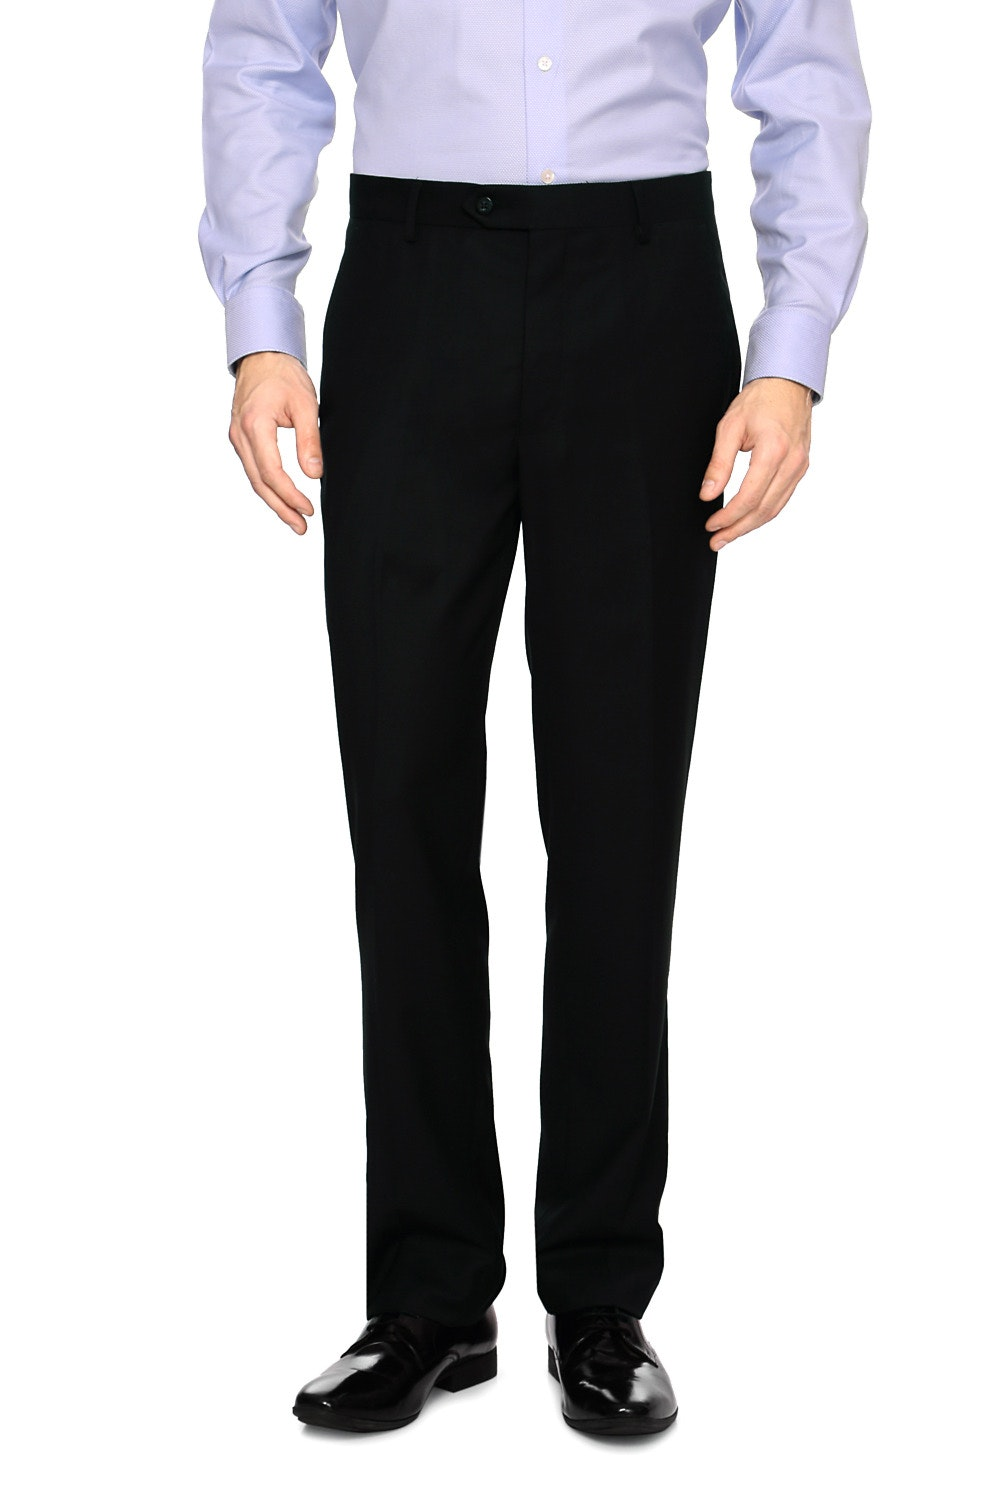 c6460b2c629 Louis Philippe Trousers & Chinos, Louis Philippe Black Trousers for ...